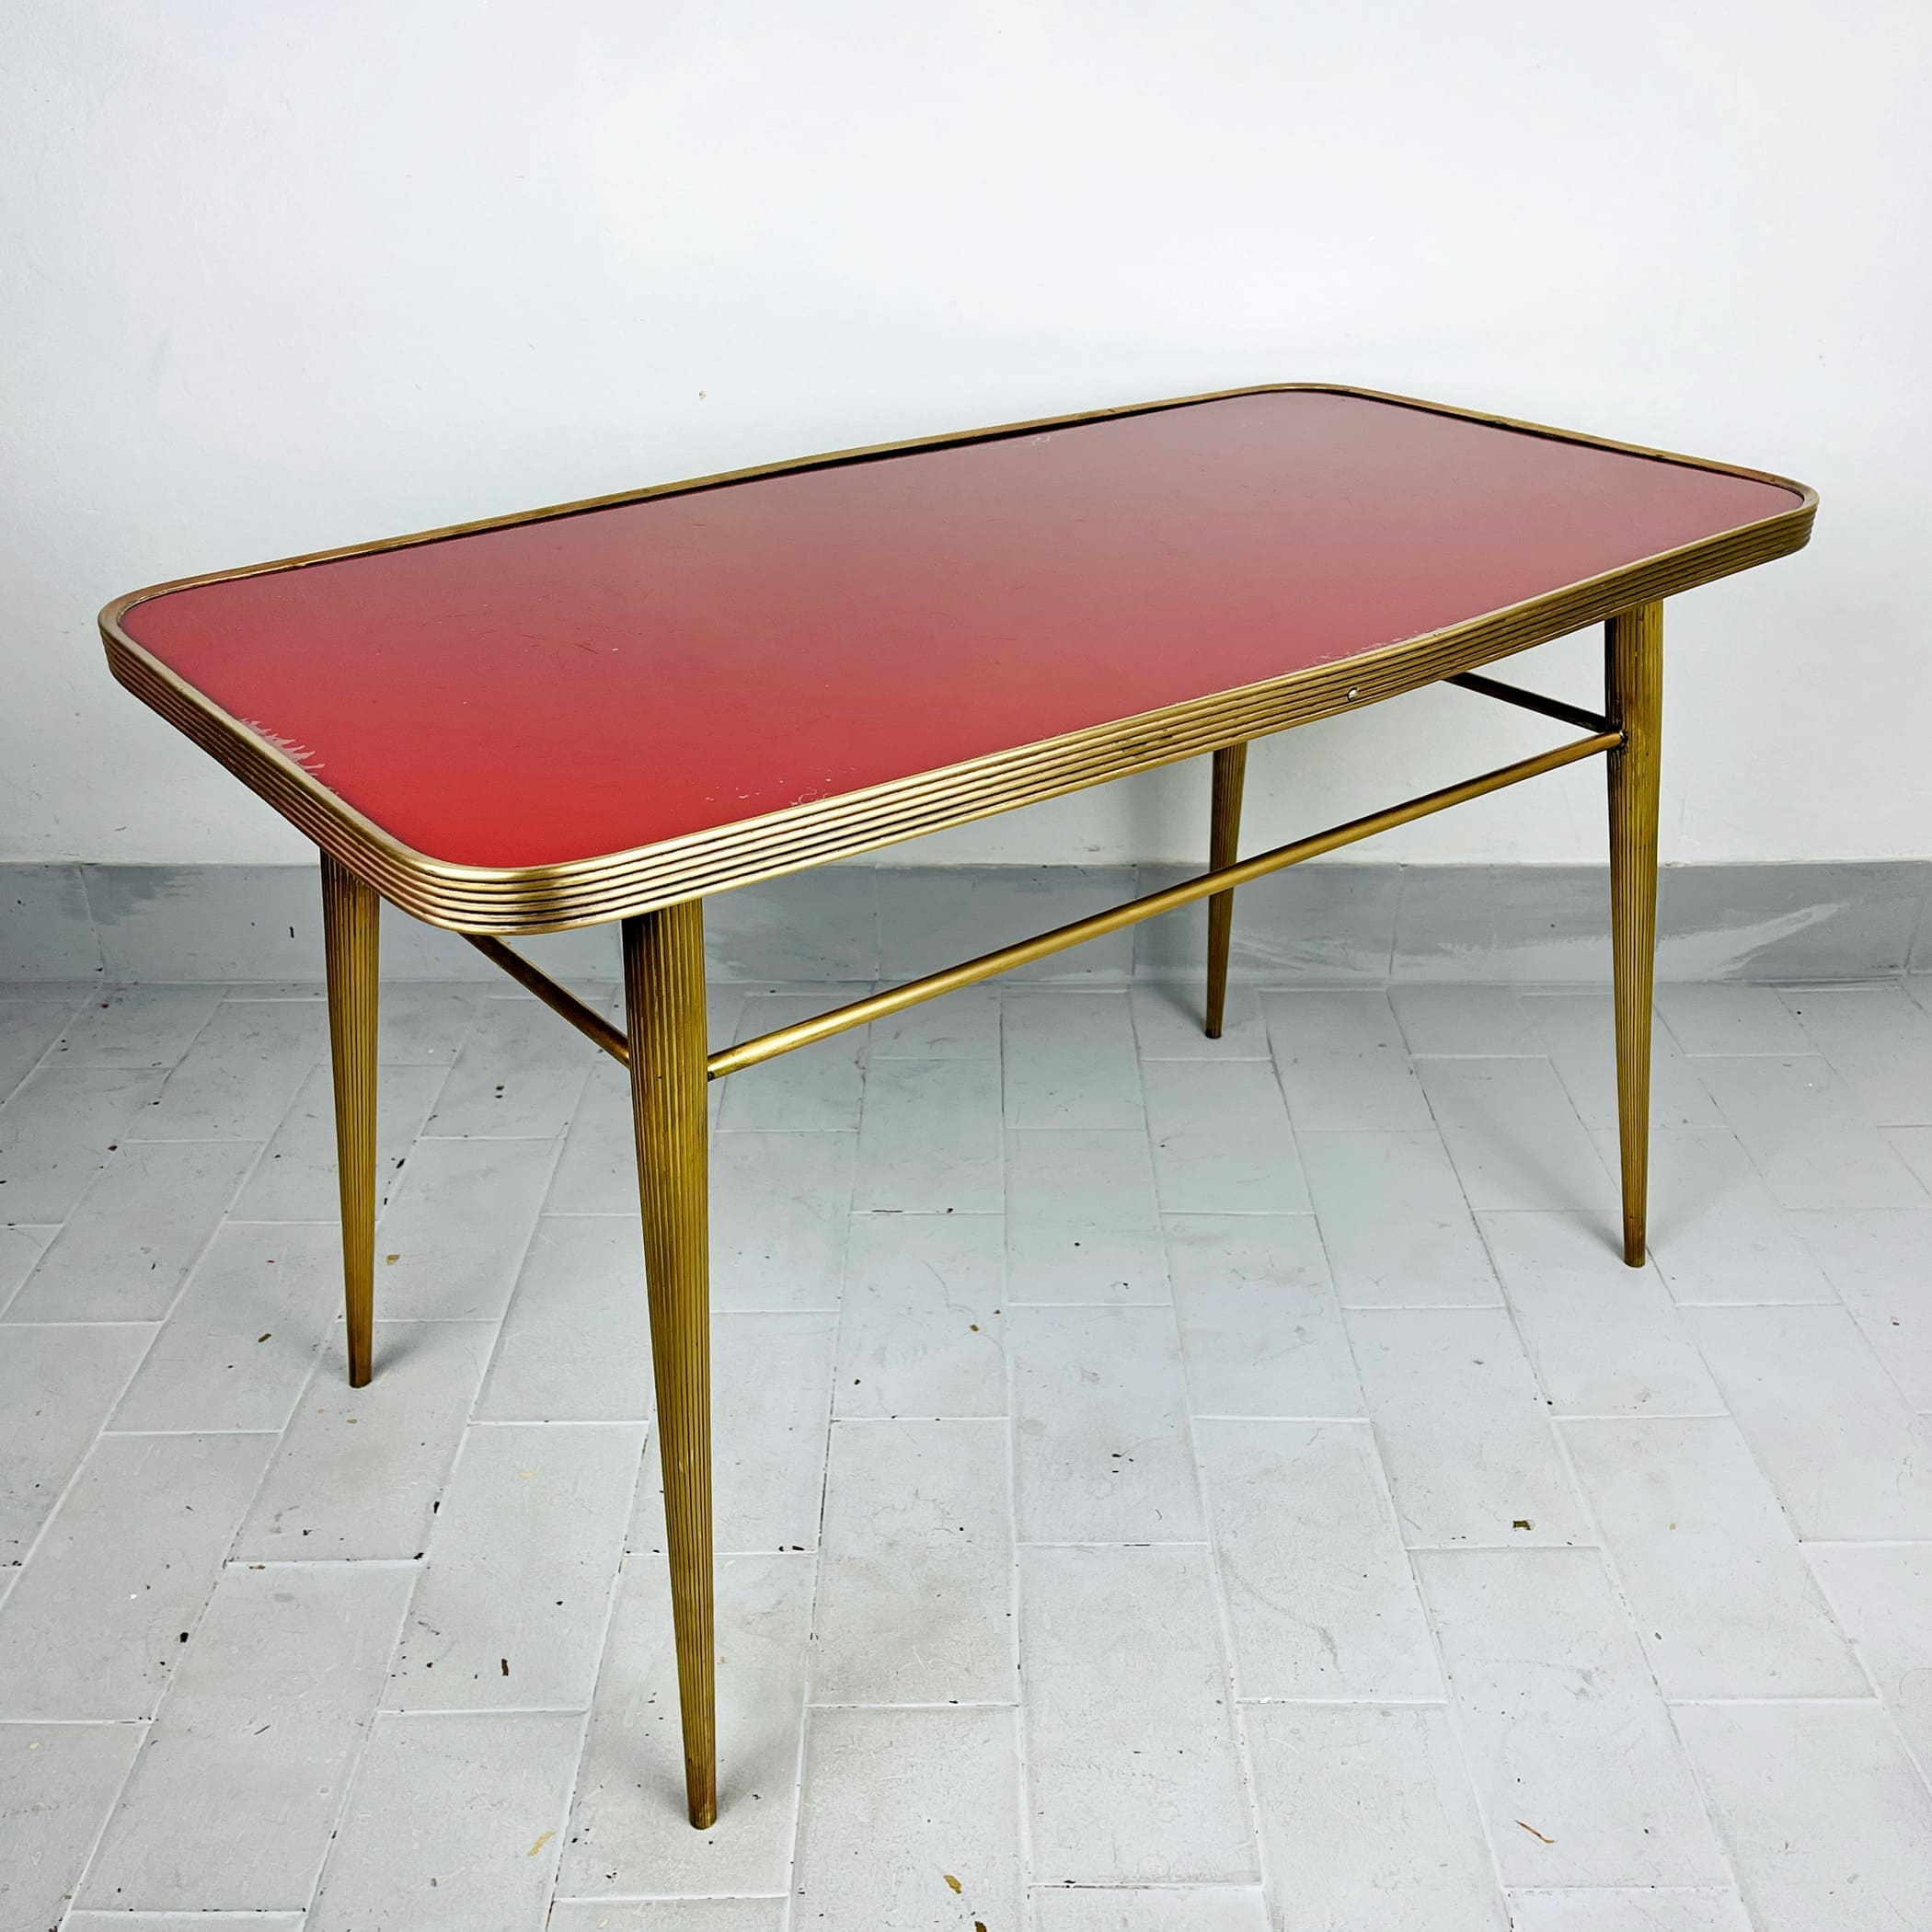 Vintage coffee table Italy 1950s Brass and Glass Red and Gold Art deco Italian Modern